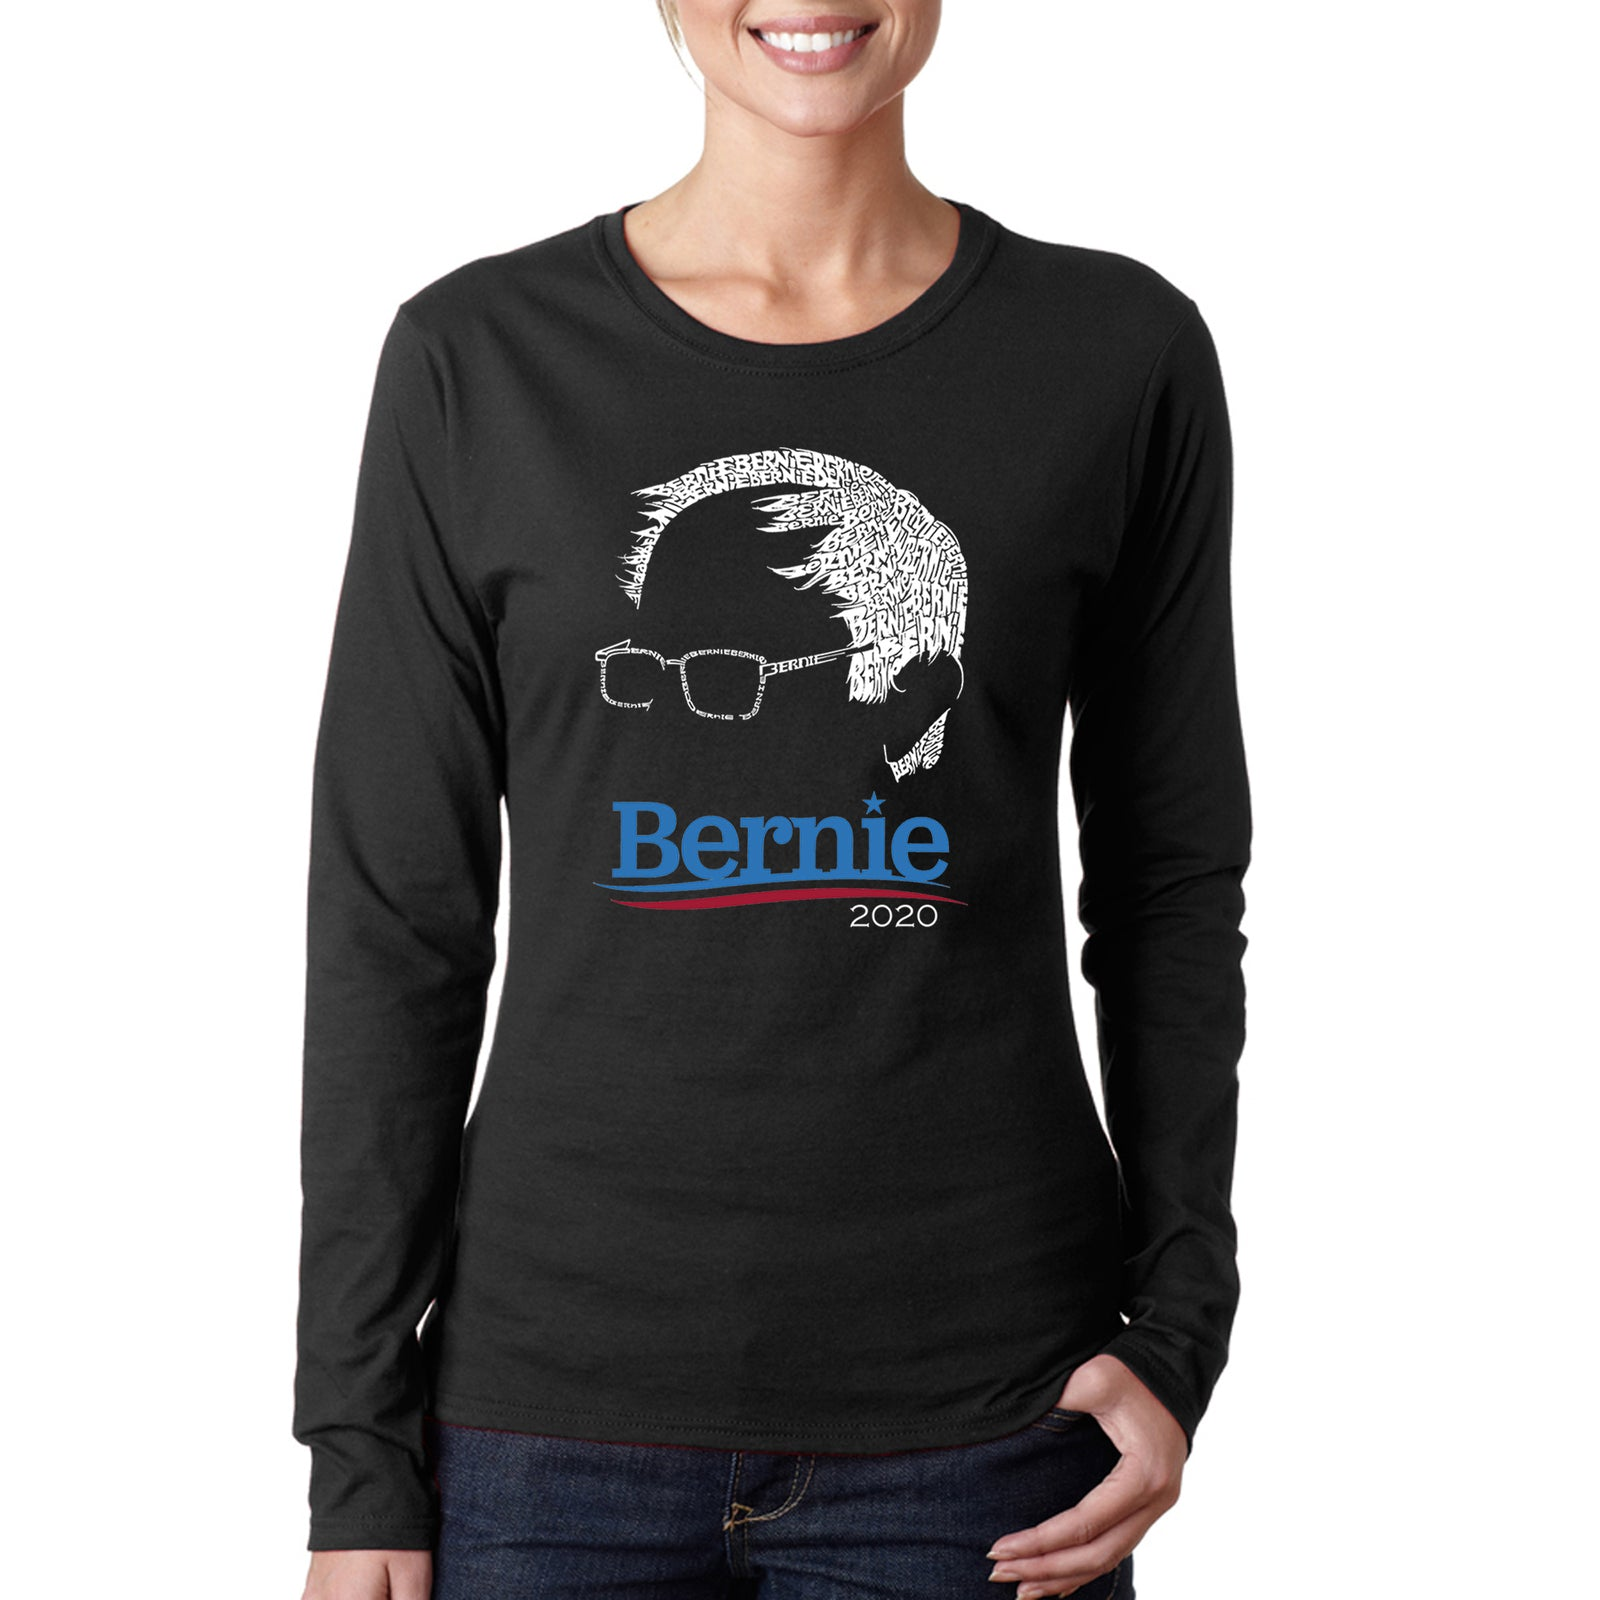 Women's Word Art Long Sleeve T-Shirt - Bernie Sanders 2020